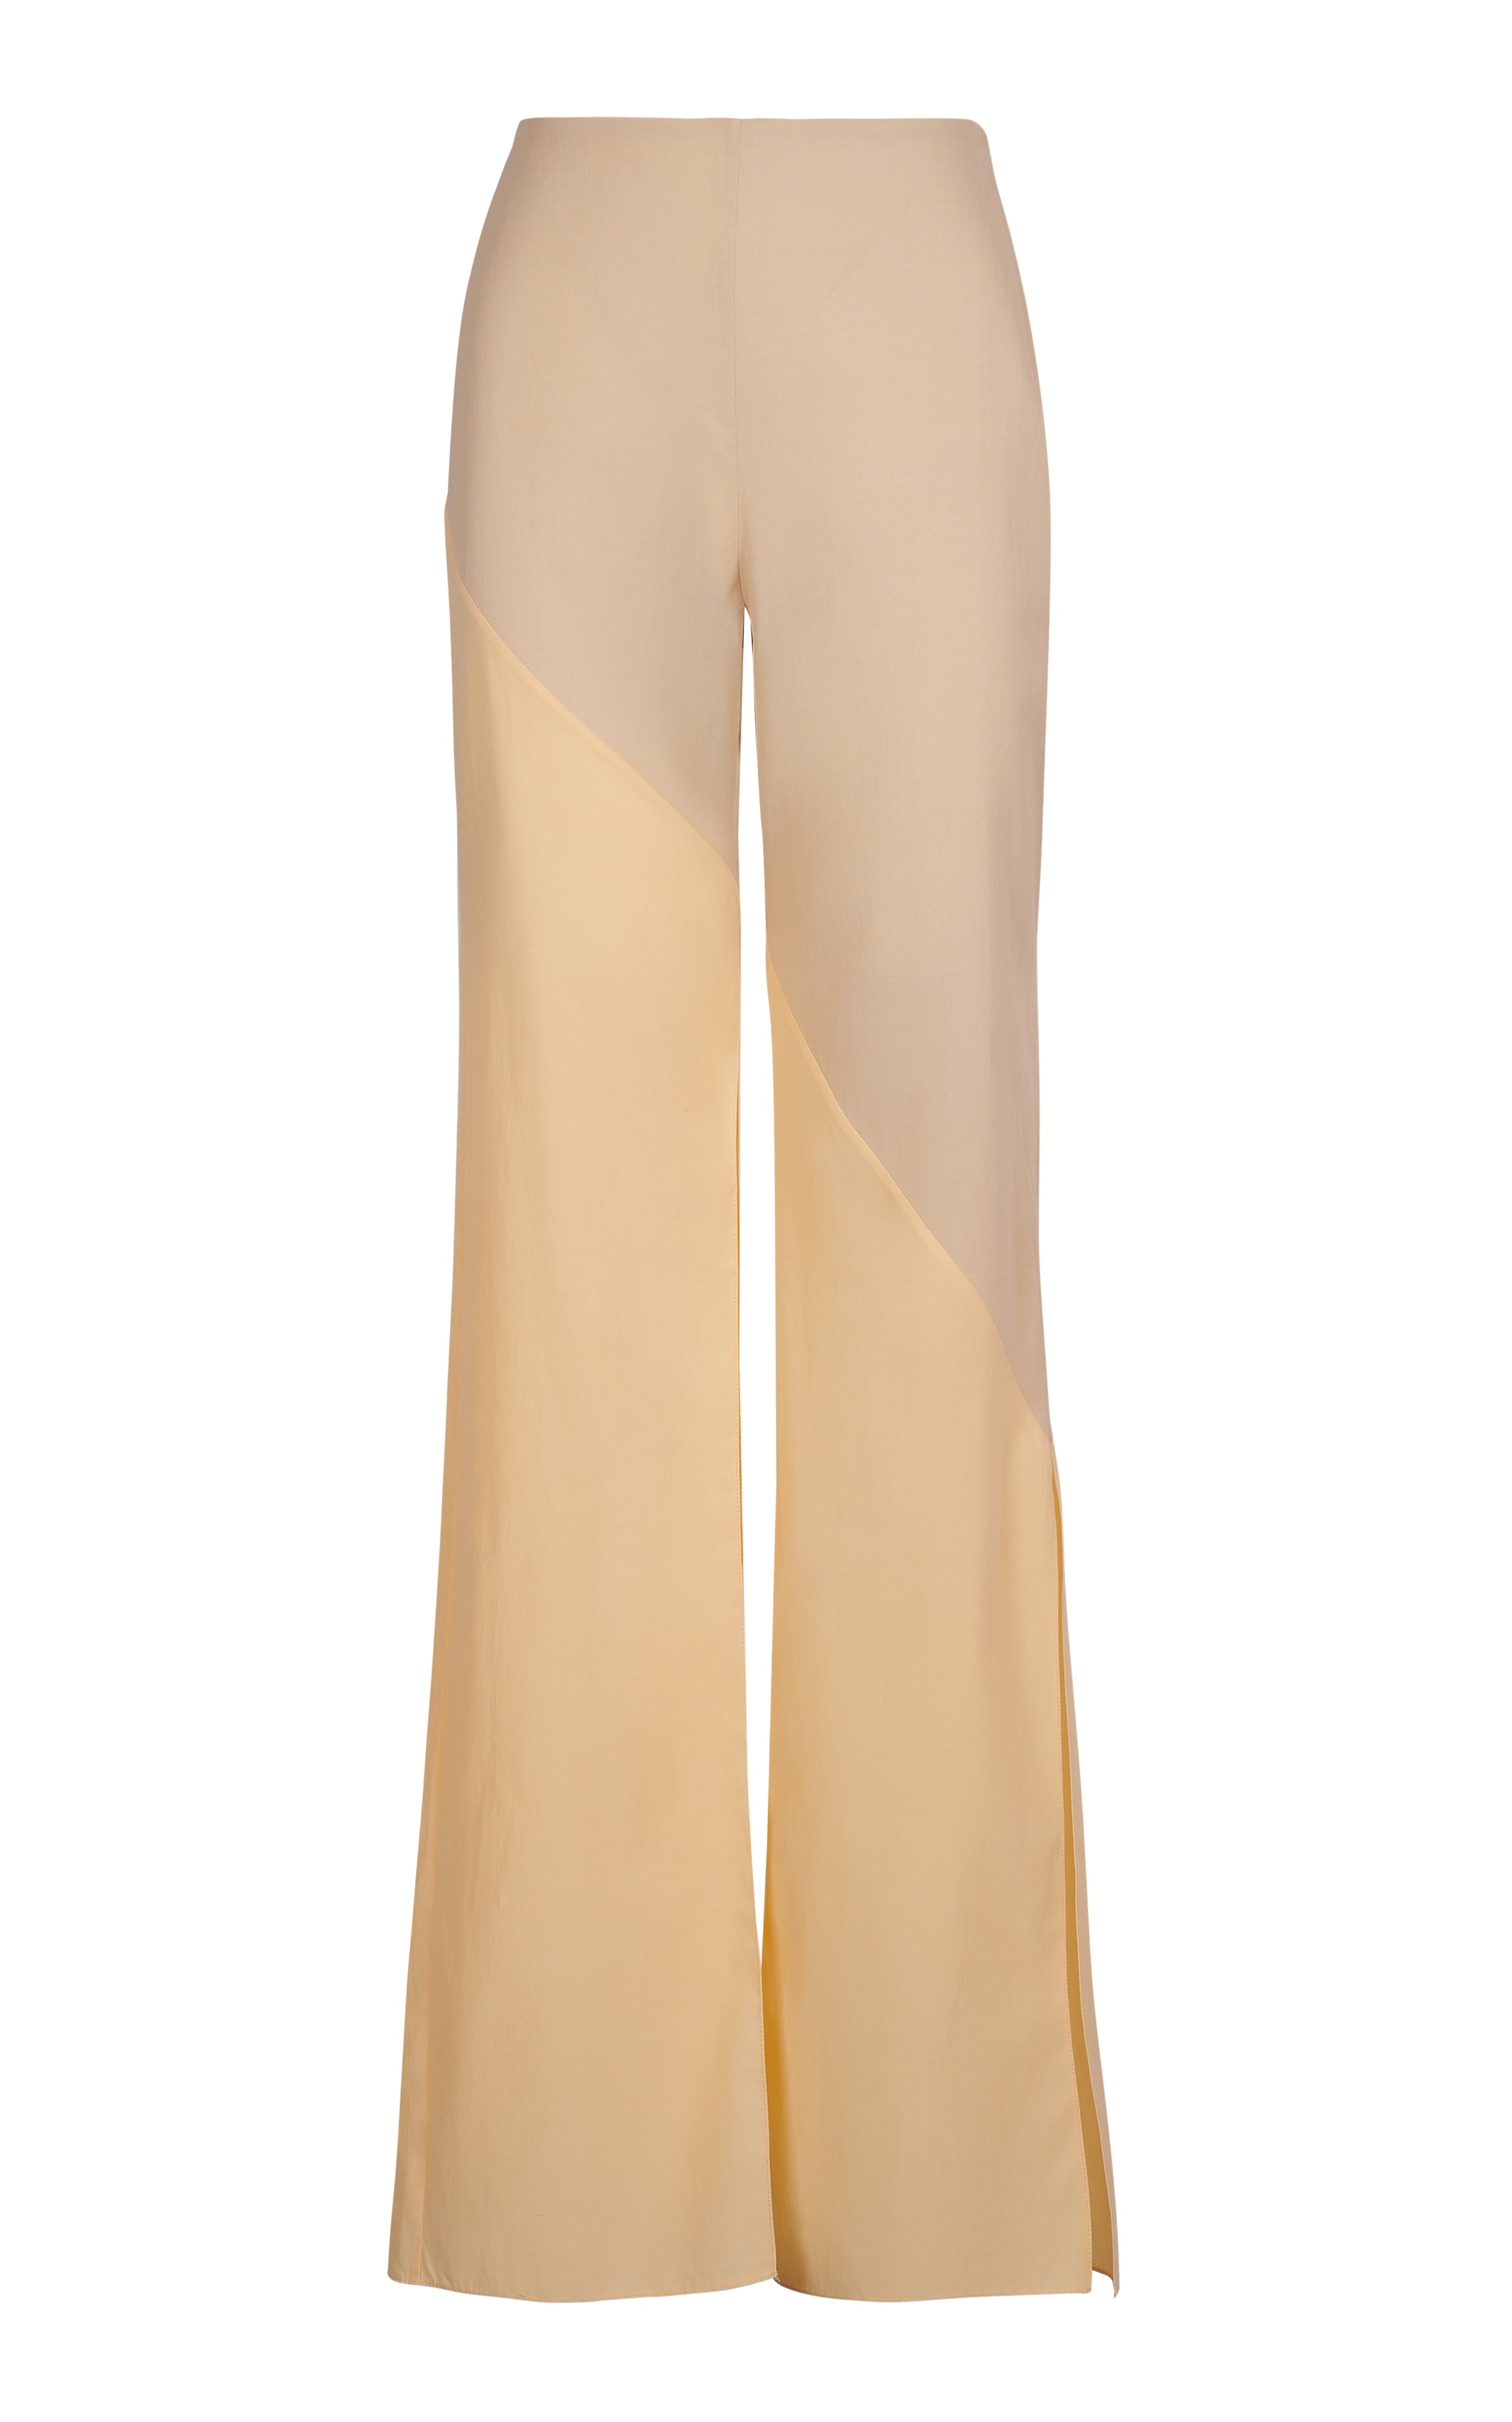 CONTRAST PANEL CUT OUT FLARE PANTS